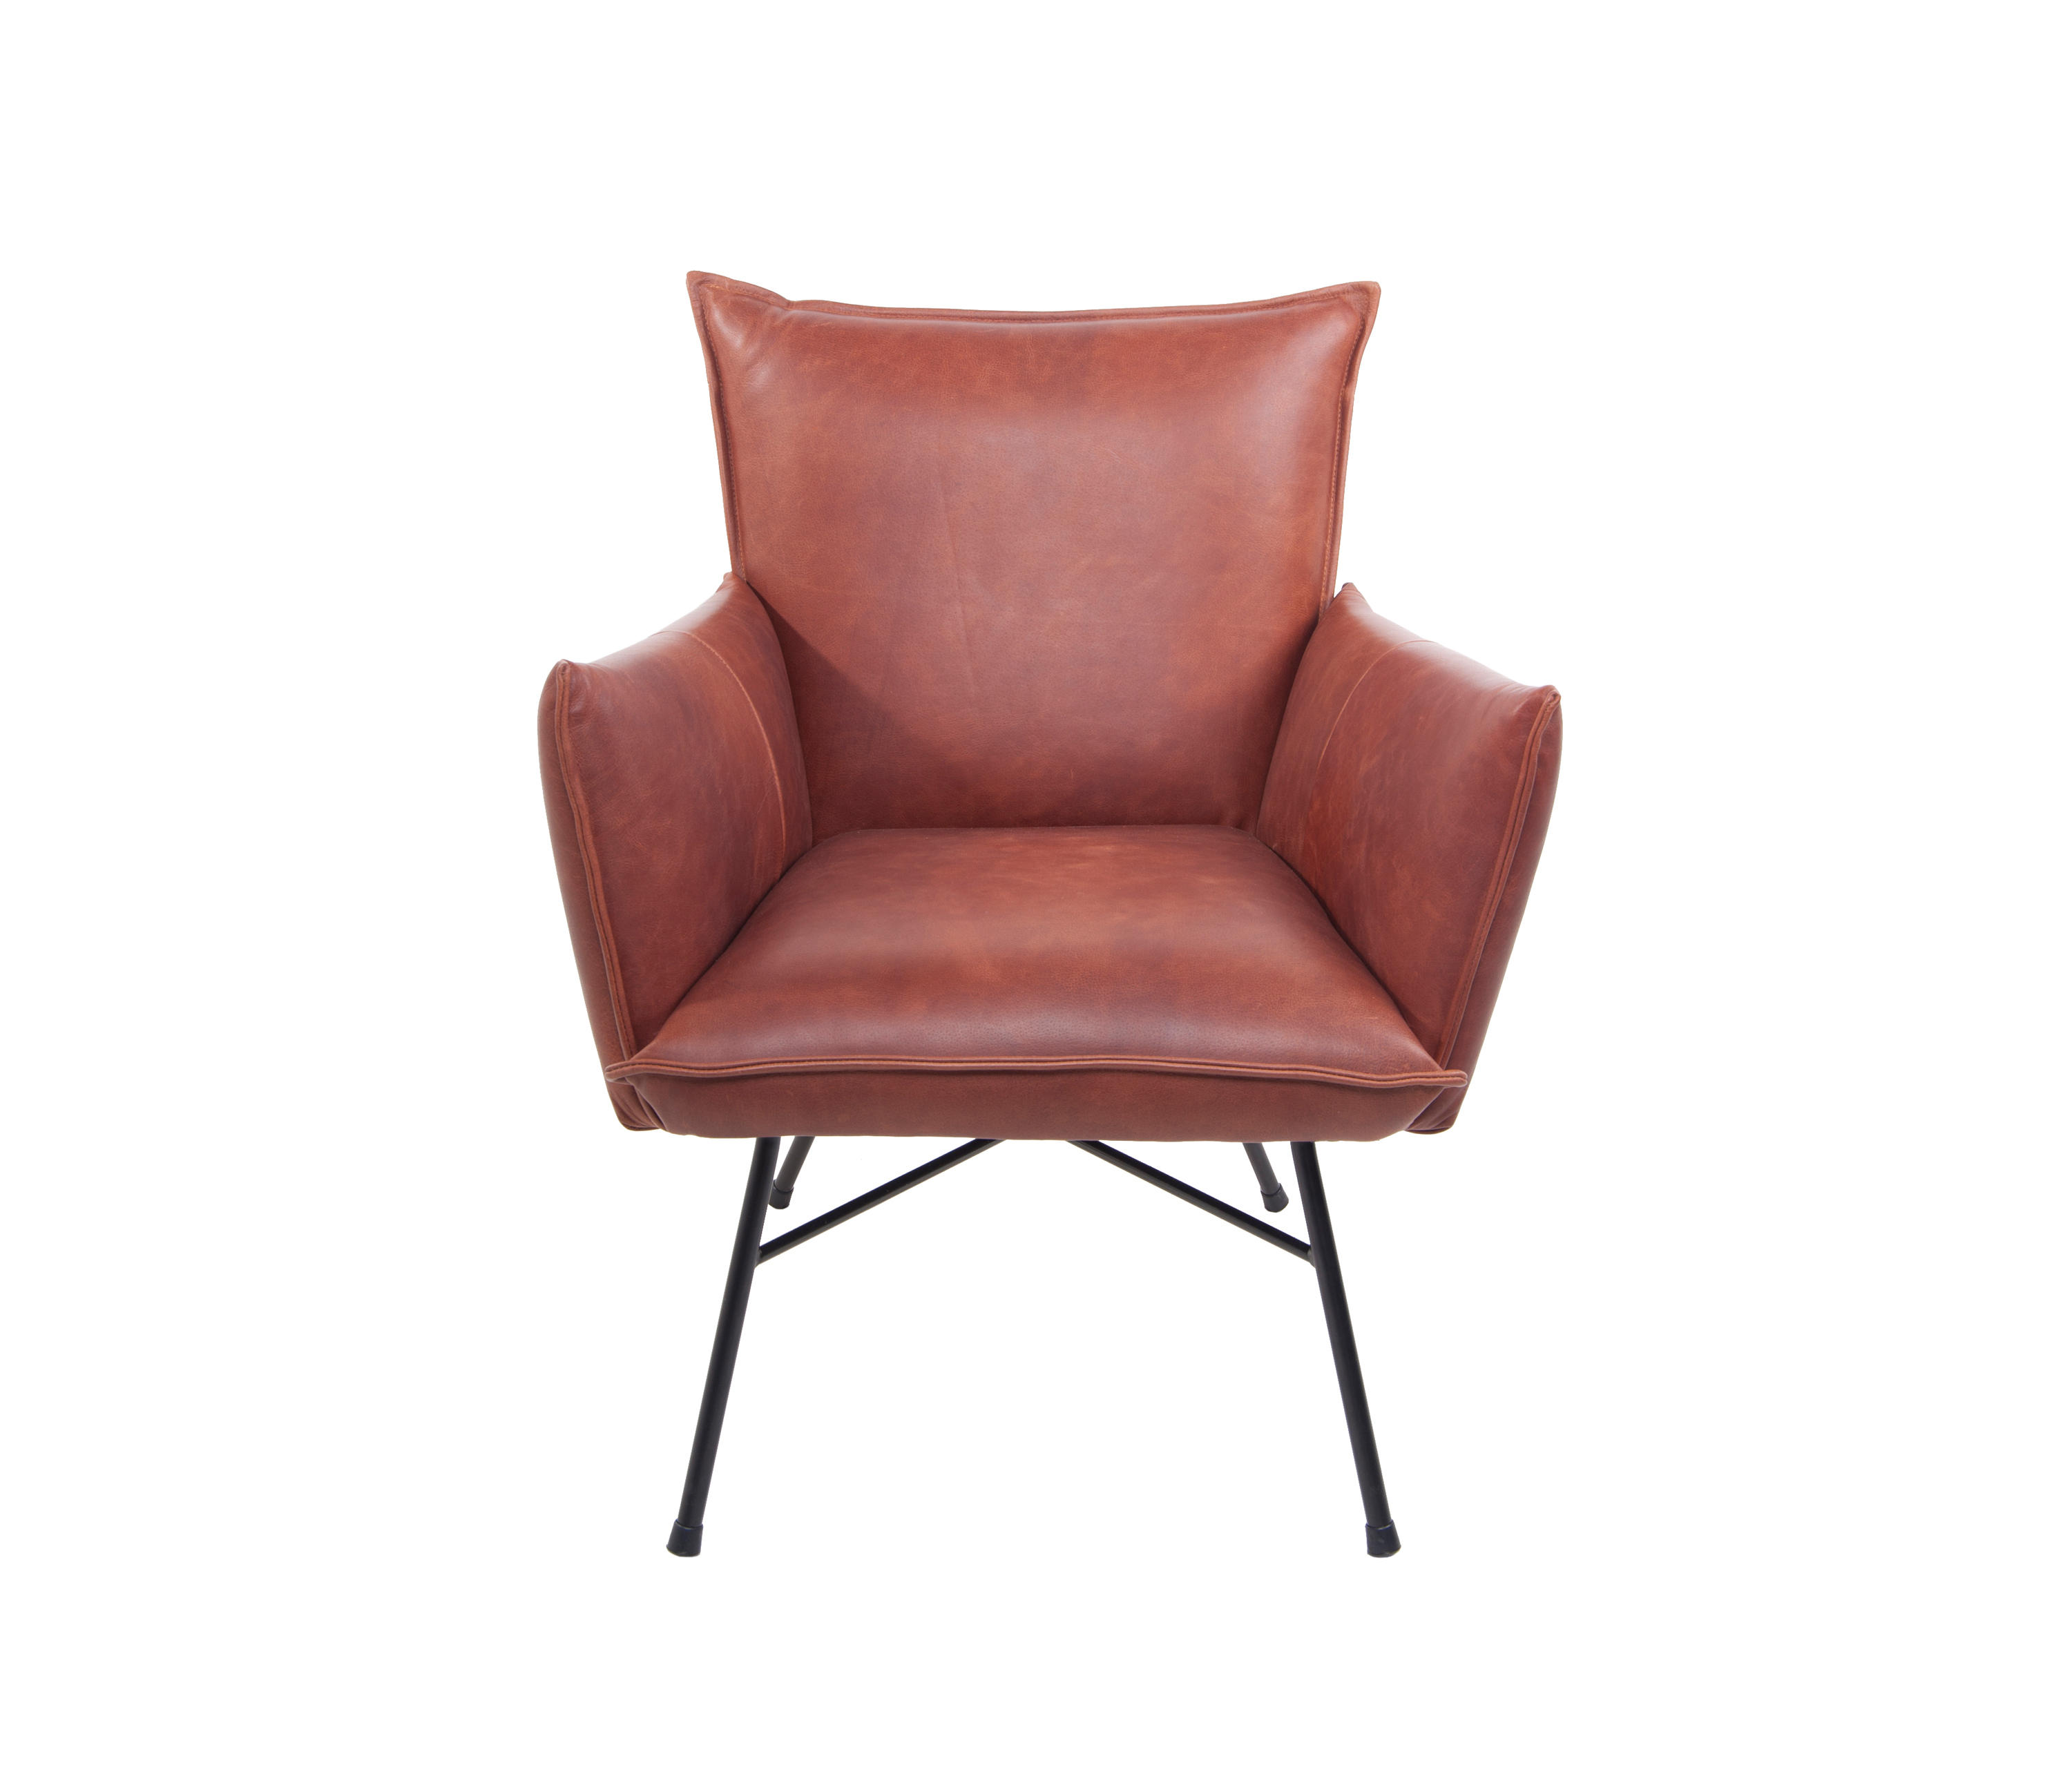 100 Design Armchair Buy The Cherner Armchair At